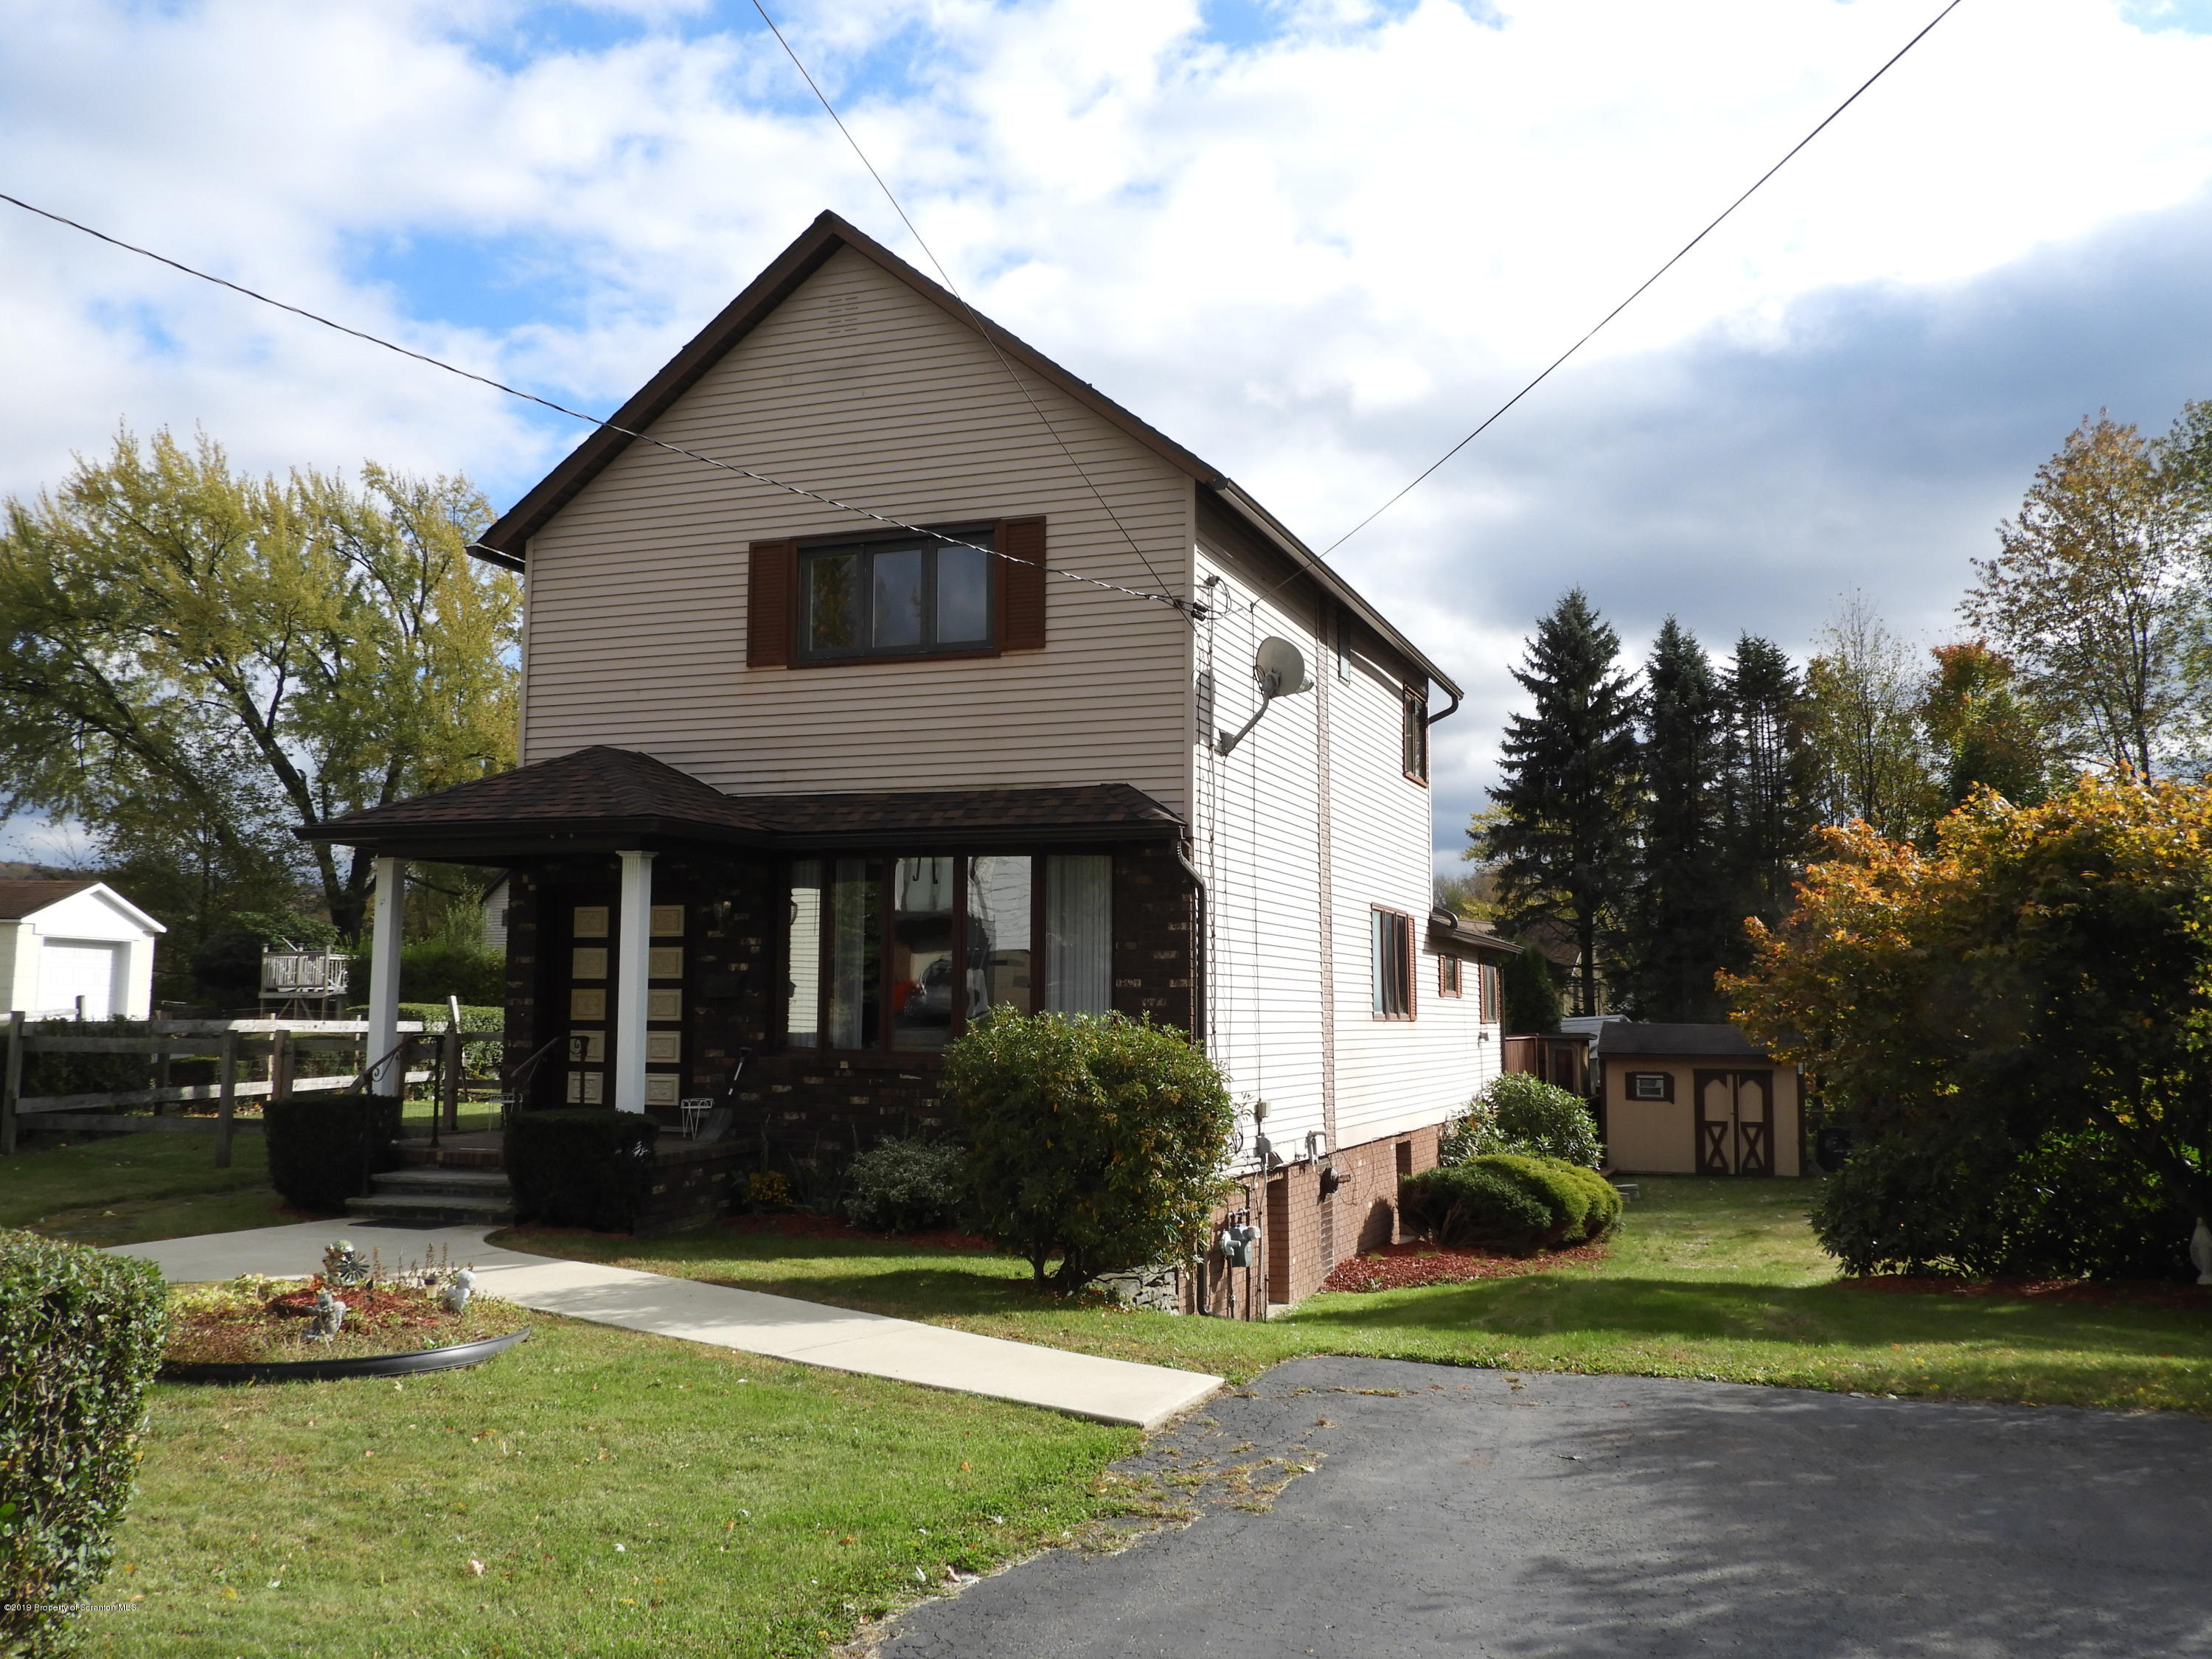 25 Orchard St, Carbondale, Pennsylvania 18407, 3 Bedrooms Bedrooms, 7 Rooms Rooms,2 BathroomsBathrooms,Single Family,For Sale,Orchard,19-4999